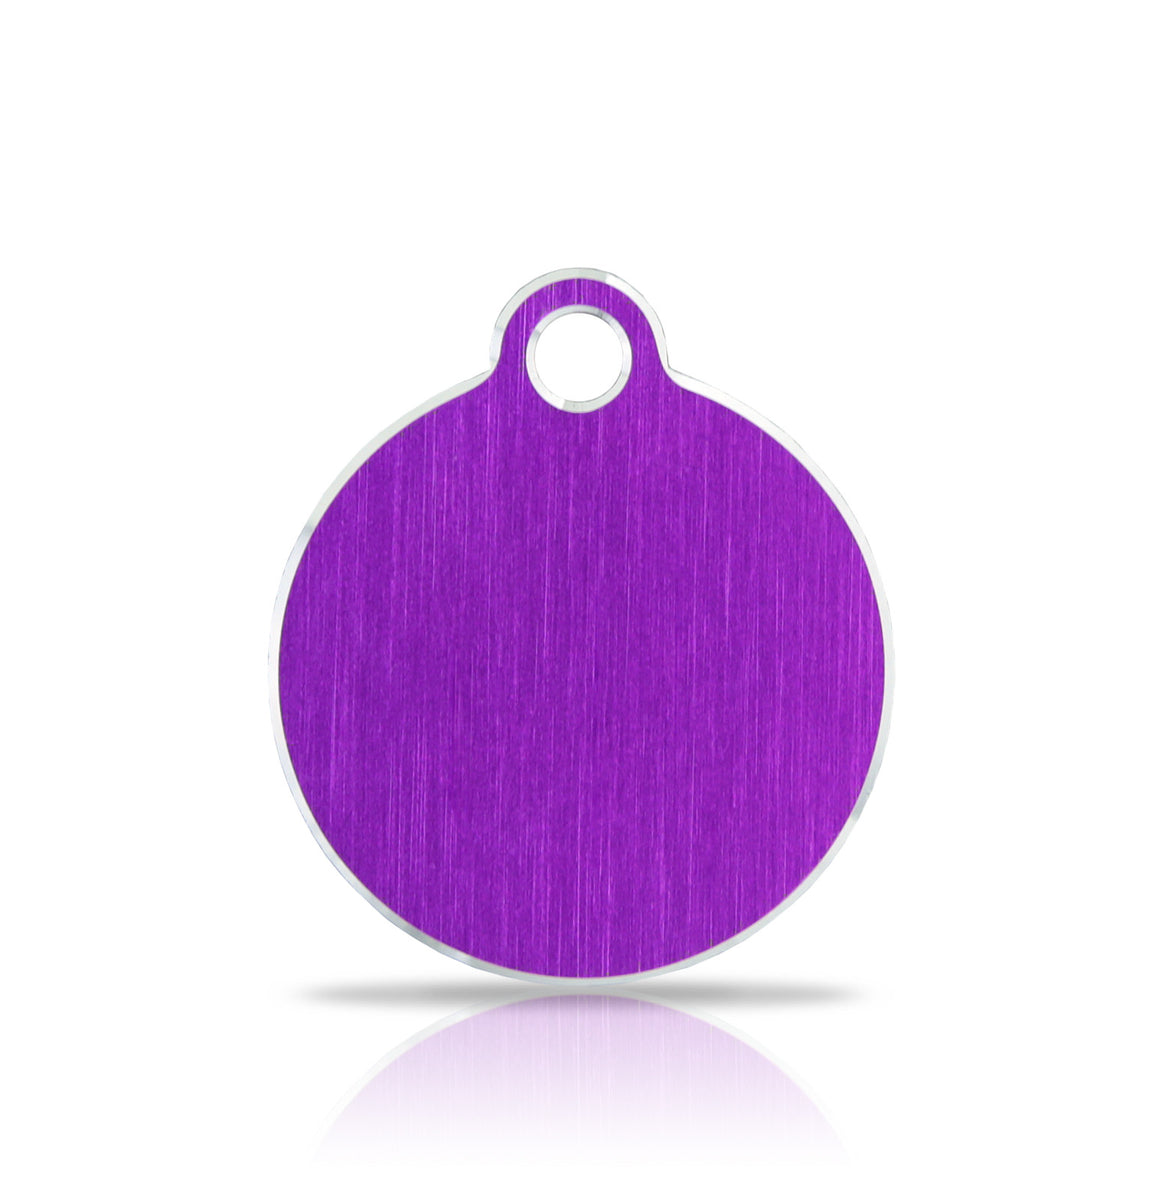 TaggIT Hi-Line Small Disc Purple Aluminium iMarc Pet Tag